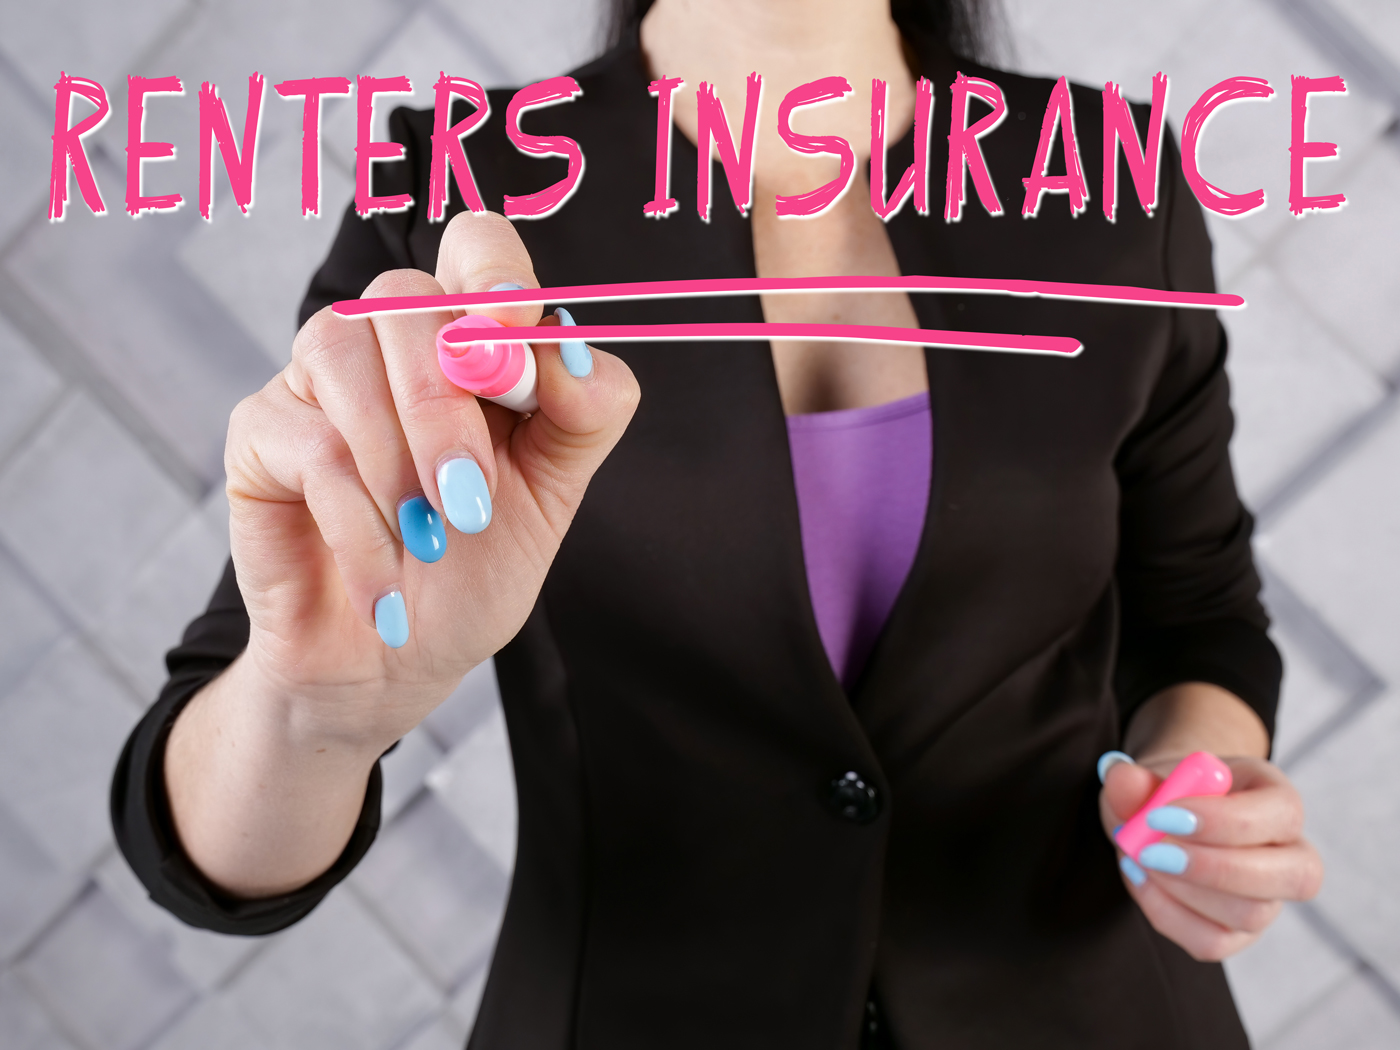 Renters Insurance: The Who, What And Why